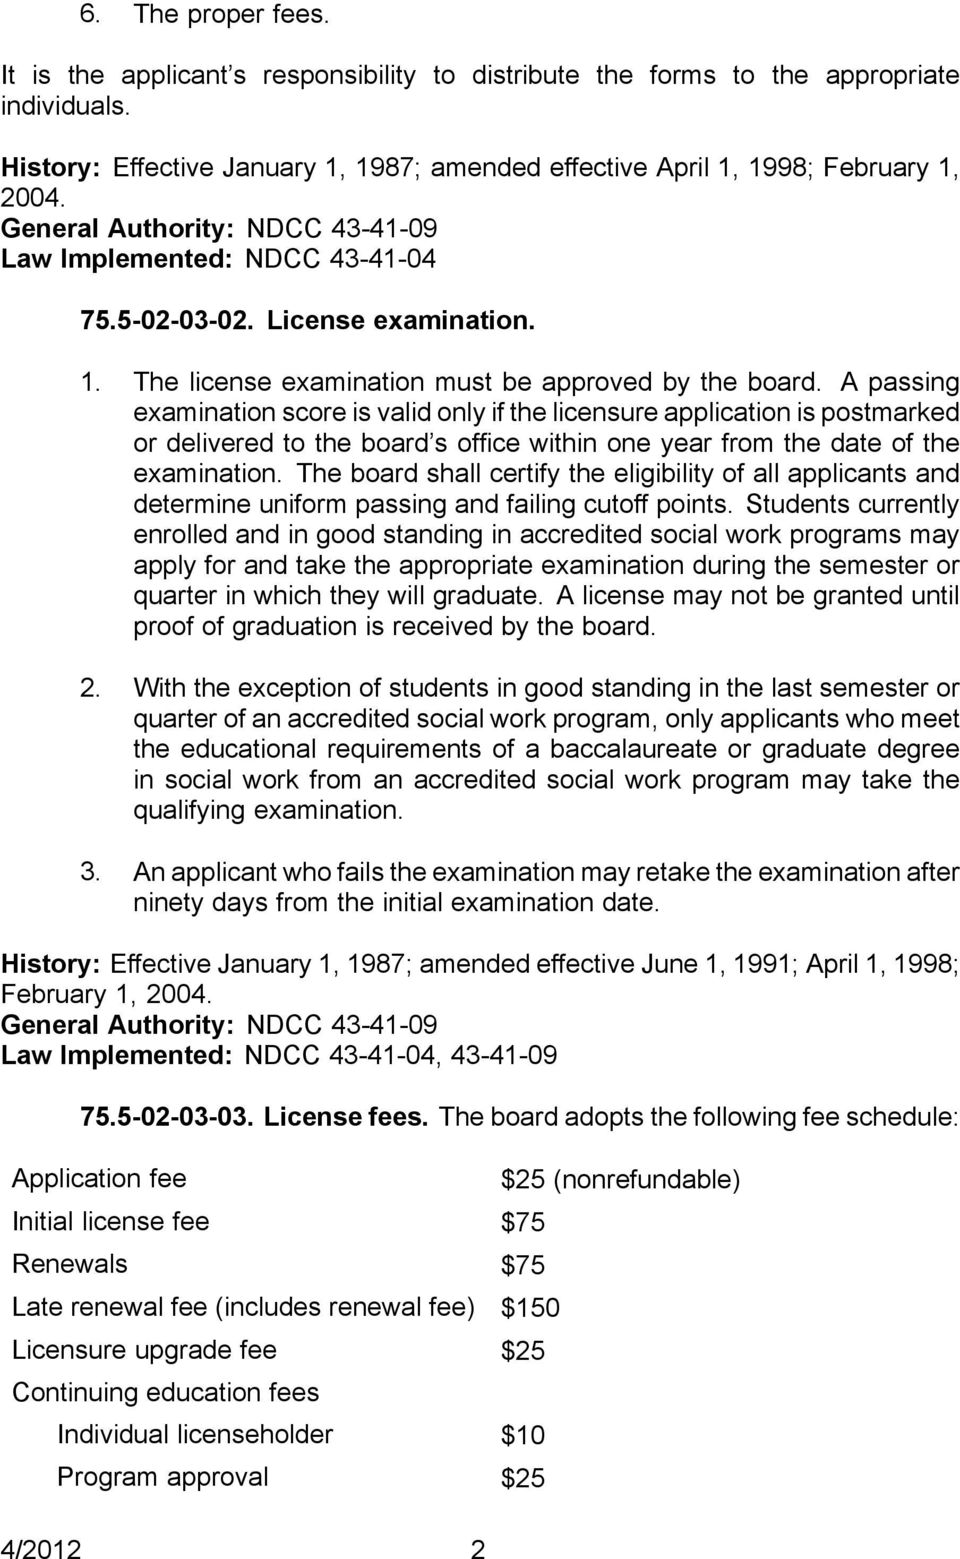 A passing examination score is valid only if the licensure application is postmarked or delivered to the board s of ce within one year from the date of the examination.